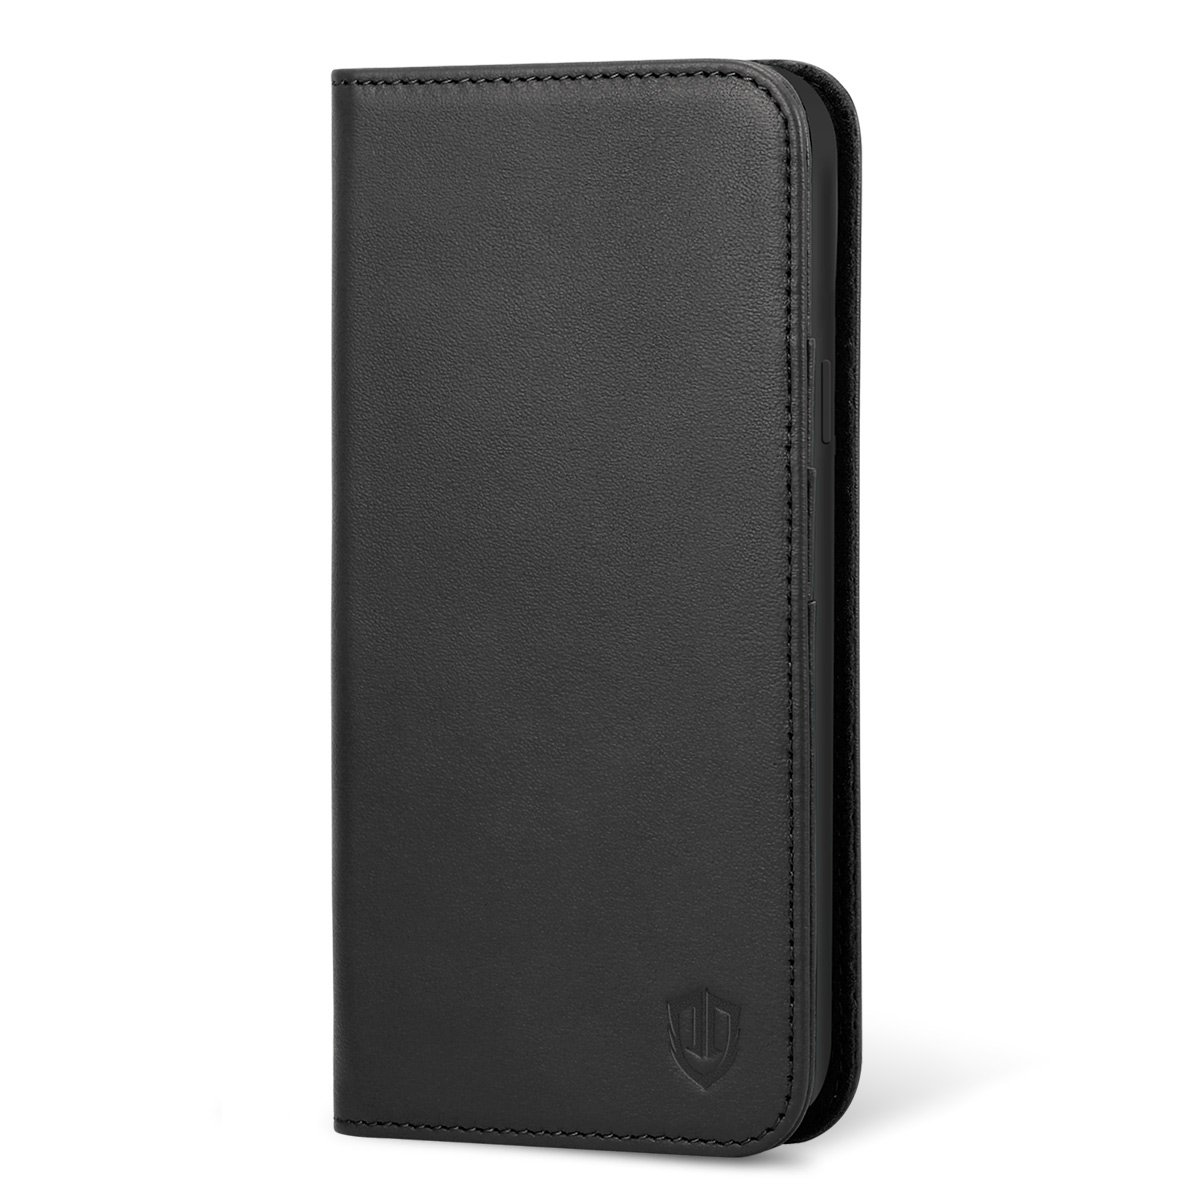 Galaxy S9 Plus Case, Galaxy S9 Plus Wallet Case, SHIELDON [Folio Cover][Stand Feature] Genuine Leather Credit Card Holder Flip Protective Case with Magnetic Closure for Galaxy S9 Plus - Black